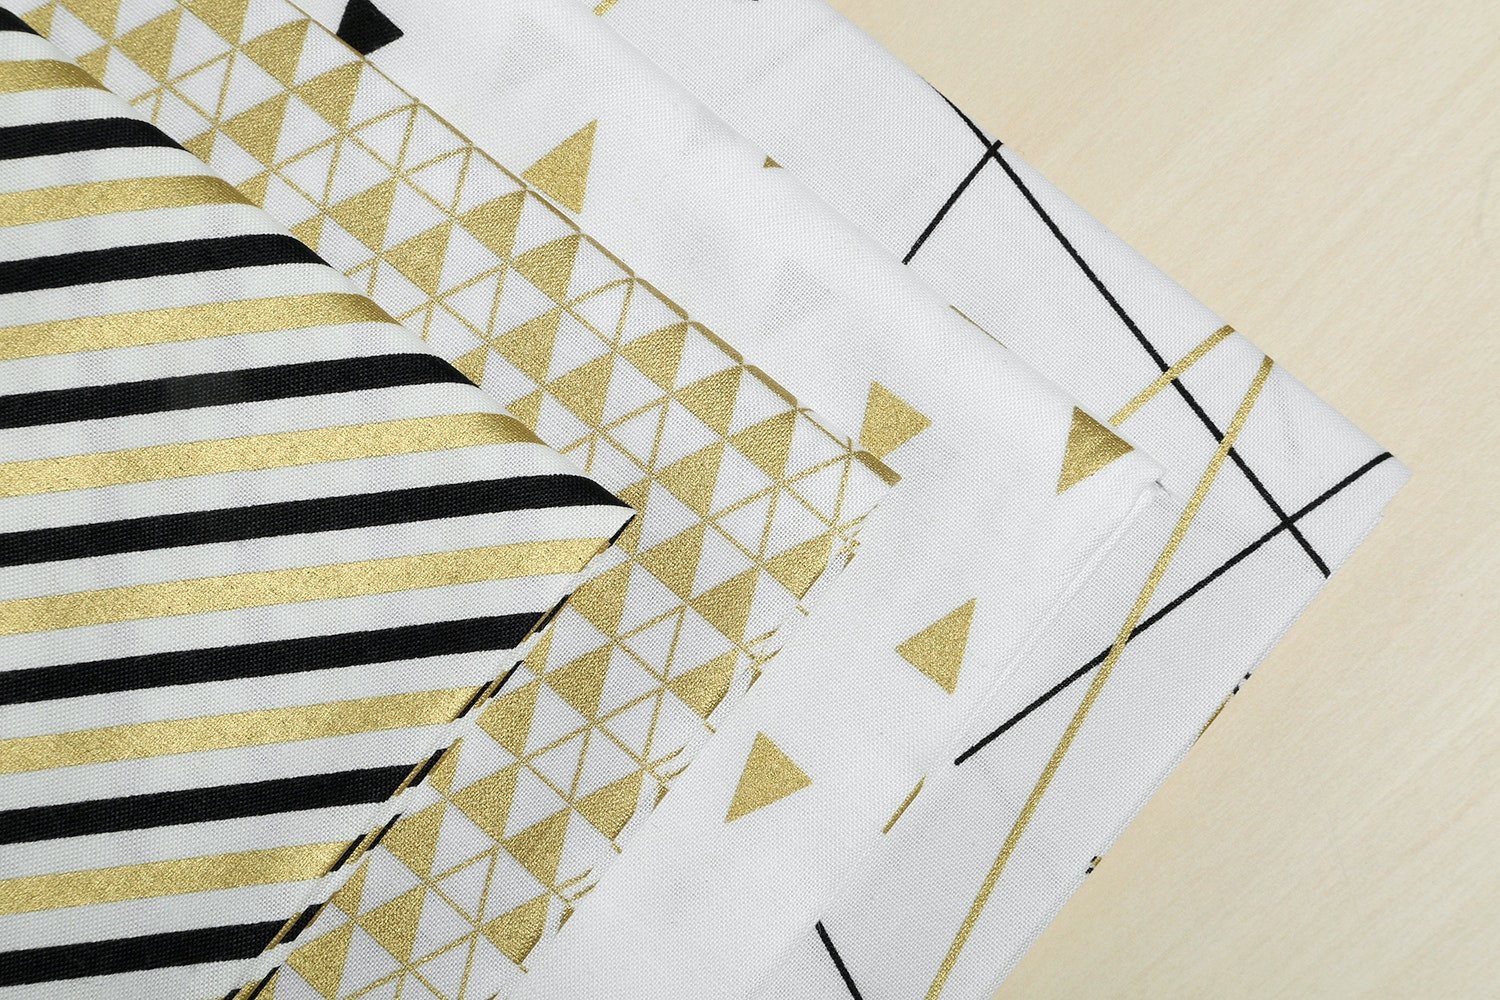 Bold and Gold by Ampersand Design